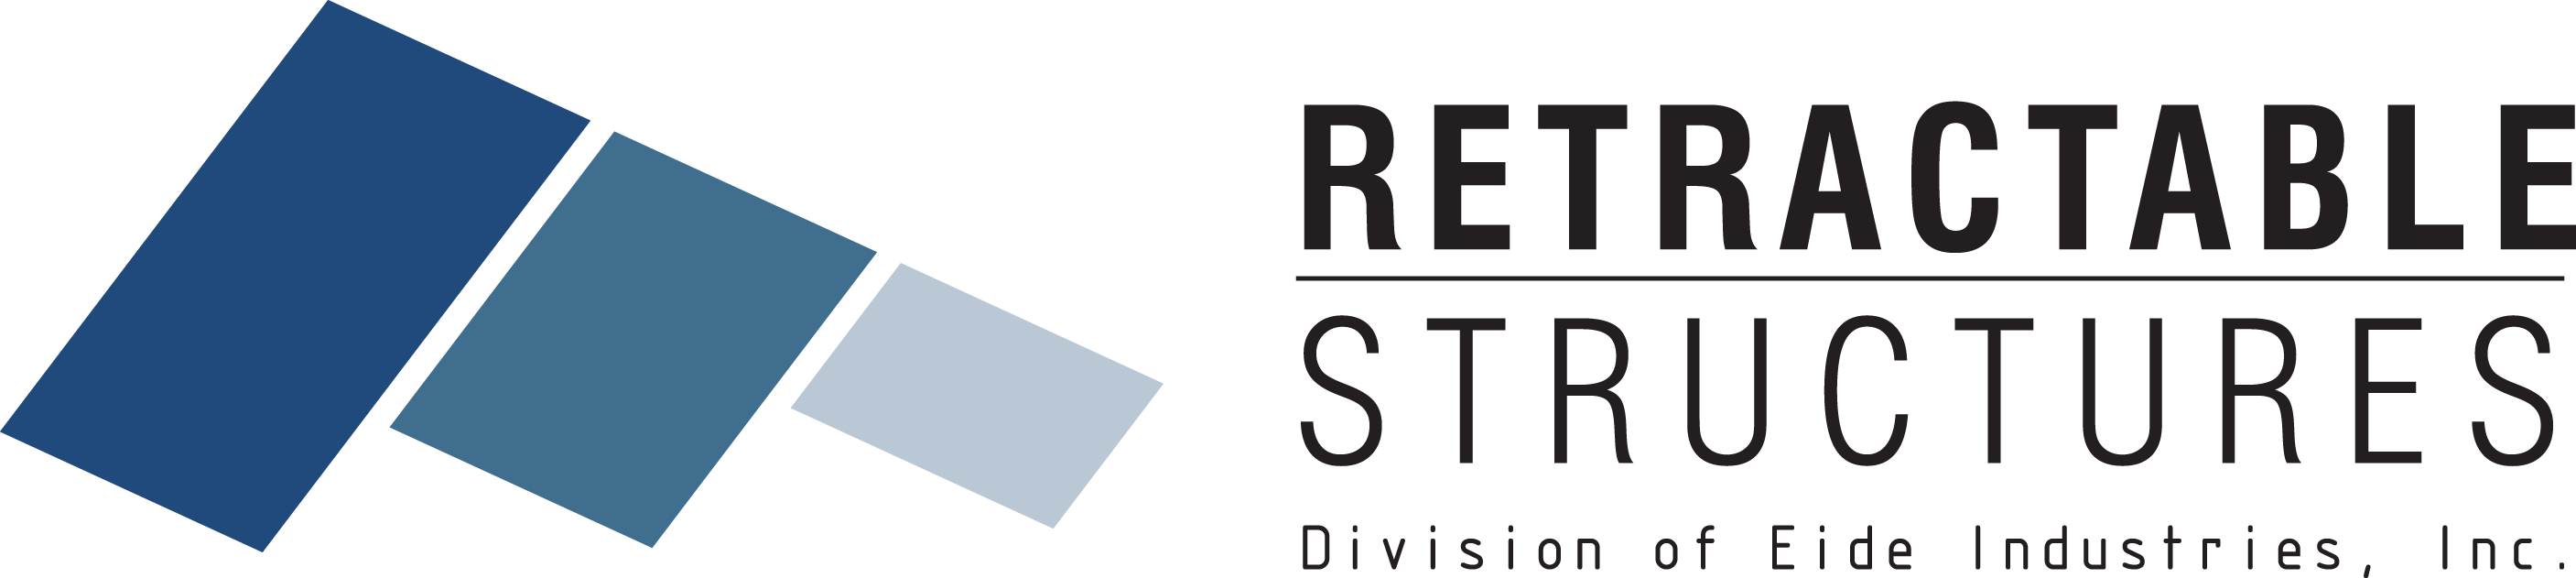 RetractableStructures.com